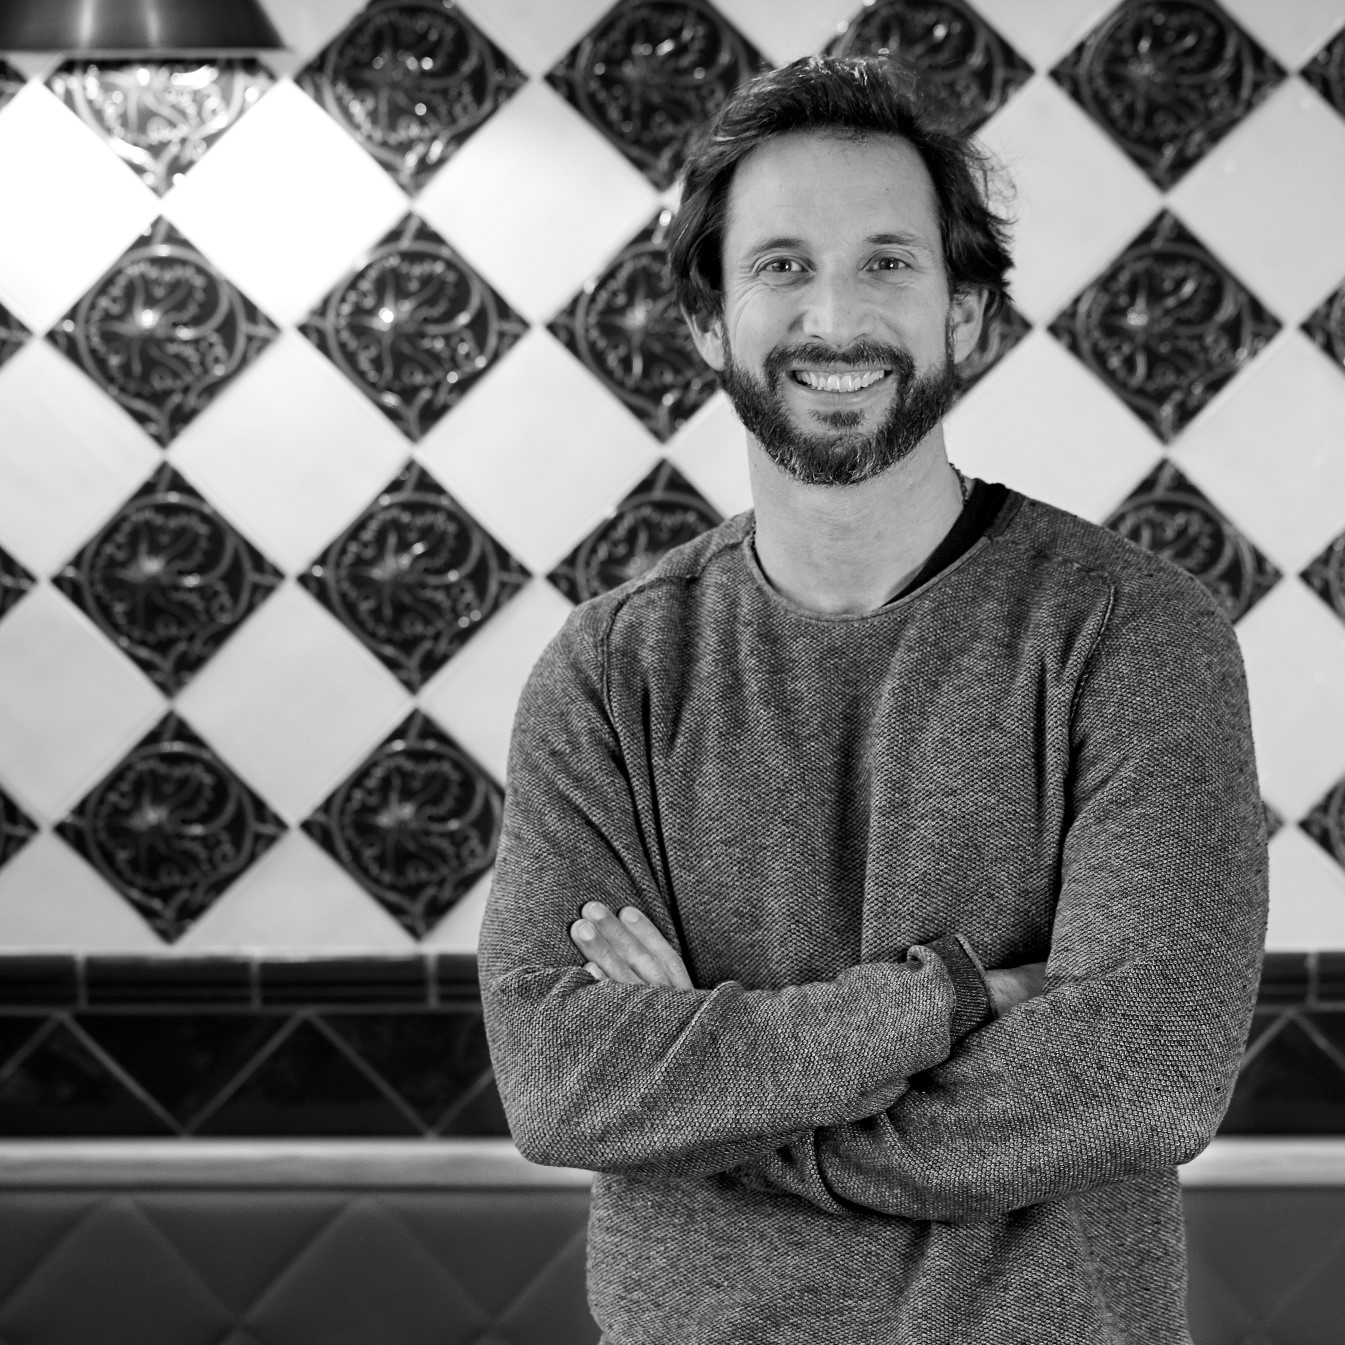 Chef José Avillez pictured in Tasca Chic. Tasca Chic is one of 3 new restaurants by José Avillez Group in the Gourmet Experience of El Corte Inglés Lisbon